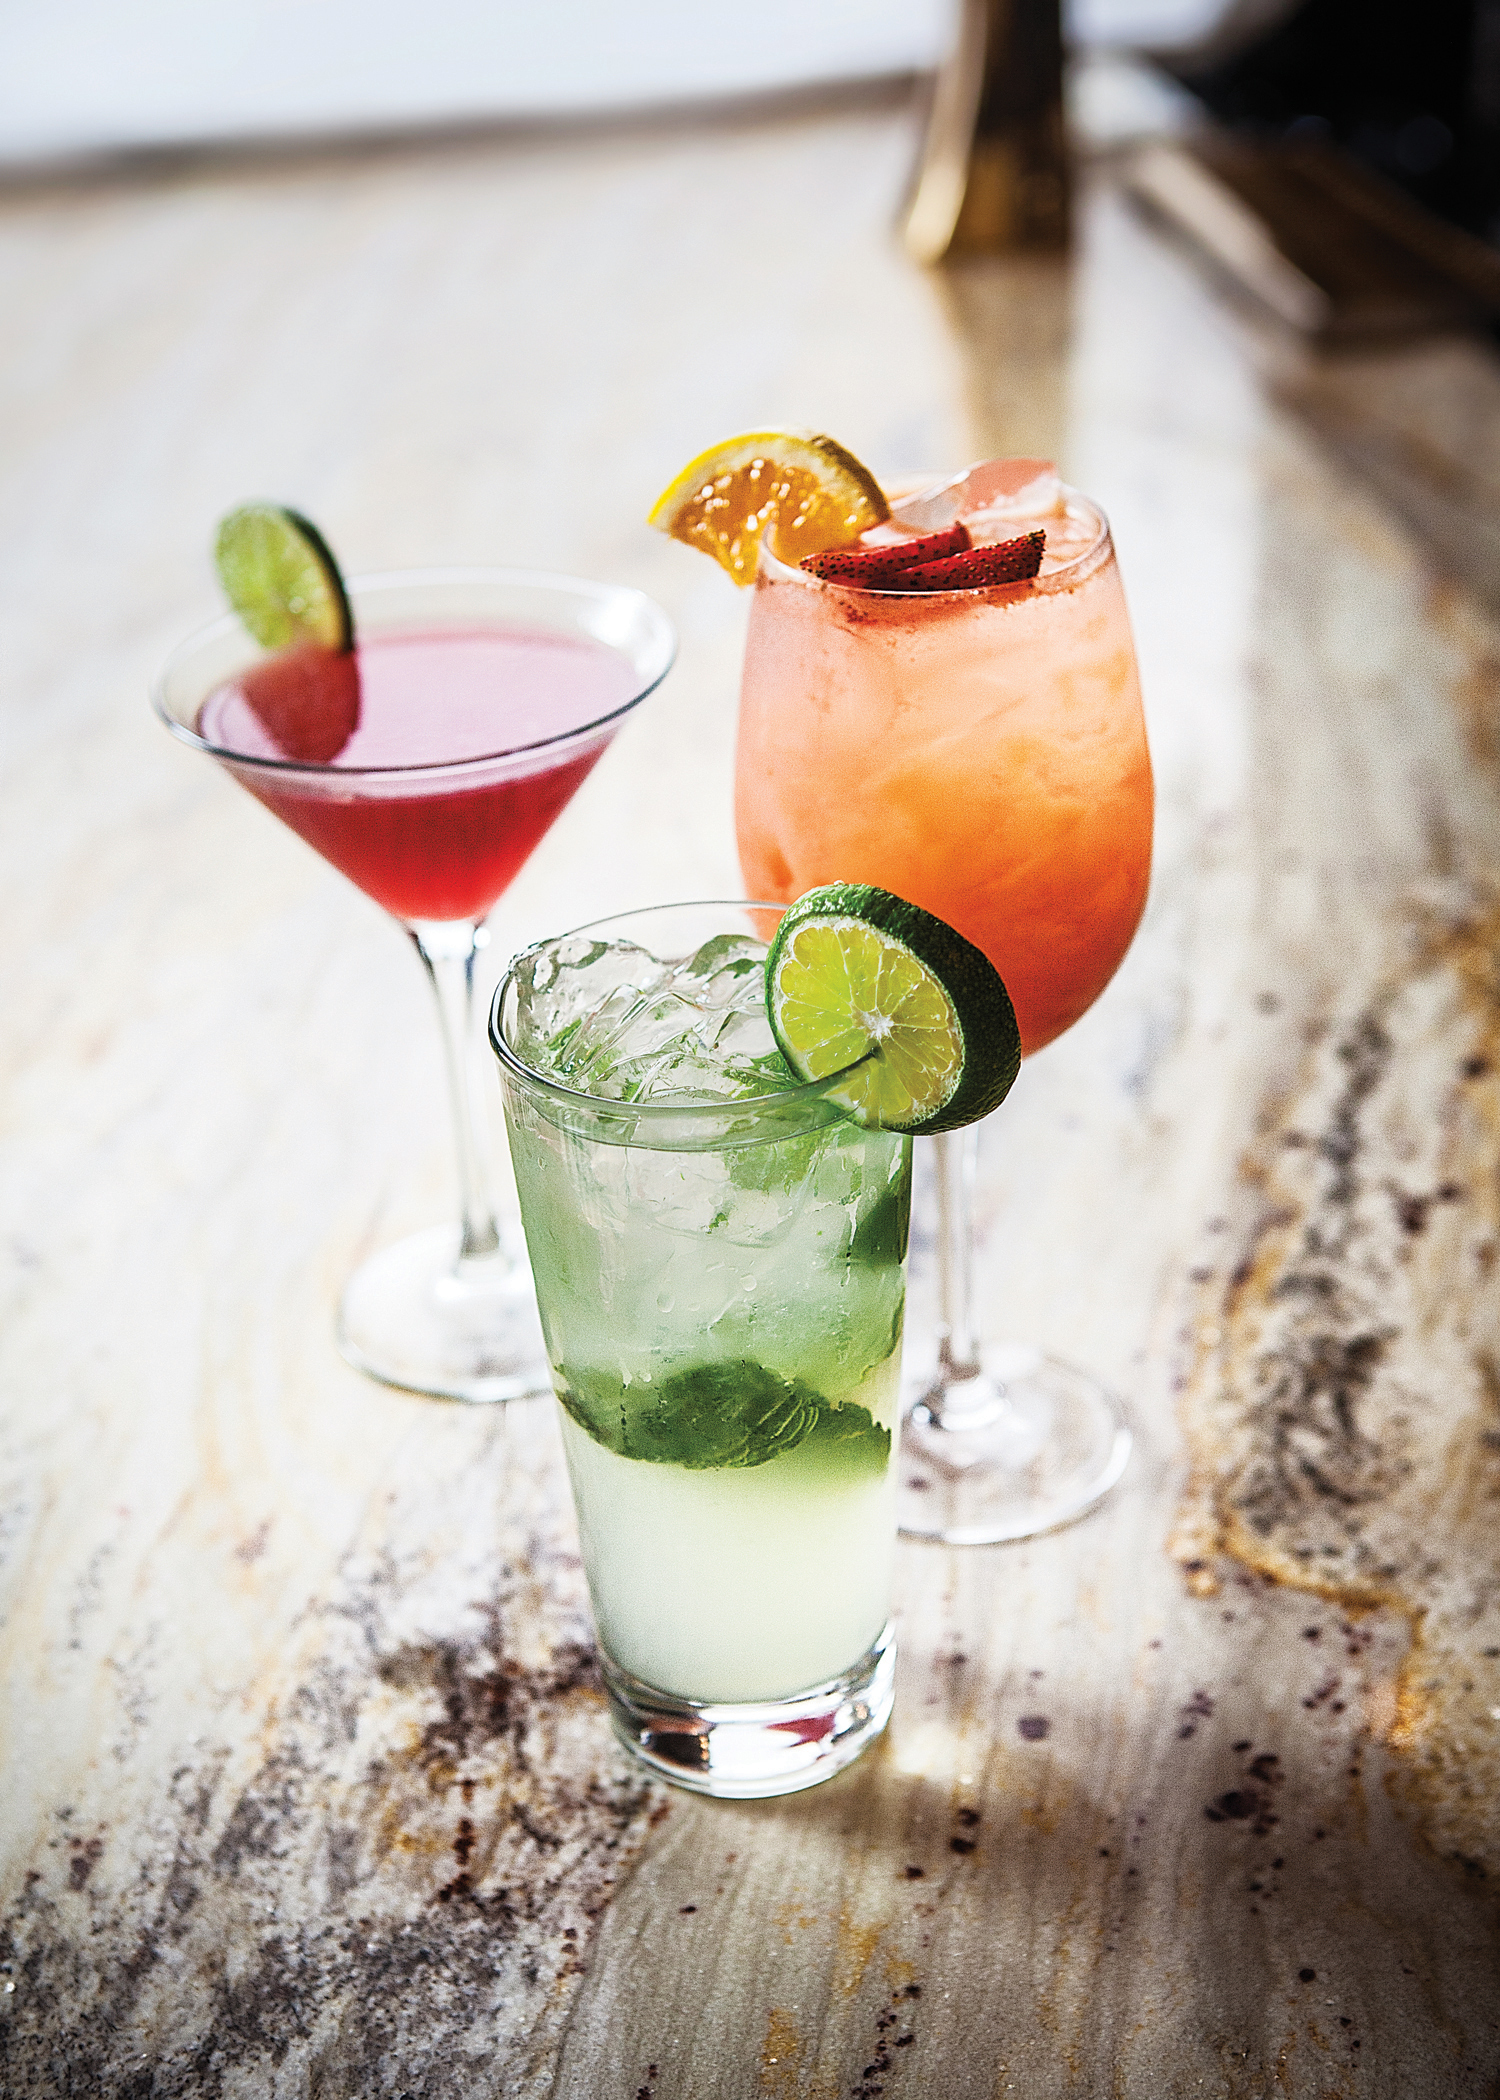 During BRAVO! Hours, guests may enjoy 13 beverage options, including White Peach Sangria, Peroni beer, Black Raspberry Cosmo, four Porta Palo wine selections and Italian Margarita for $4–$6 per glass. (Photo: Business Wire)